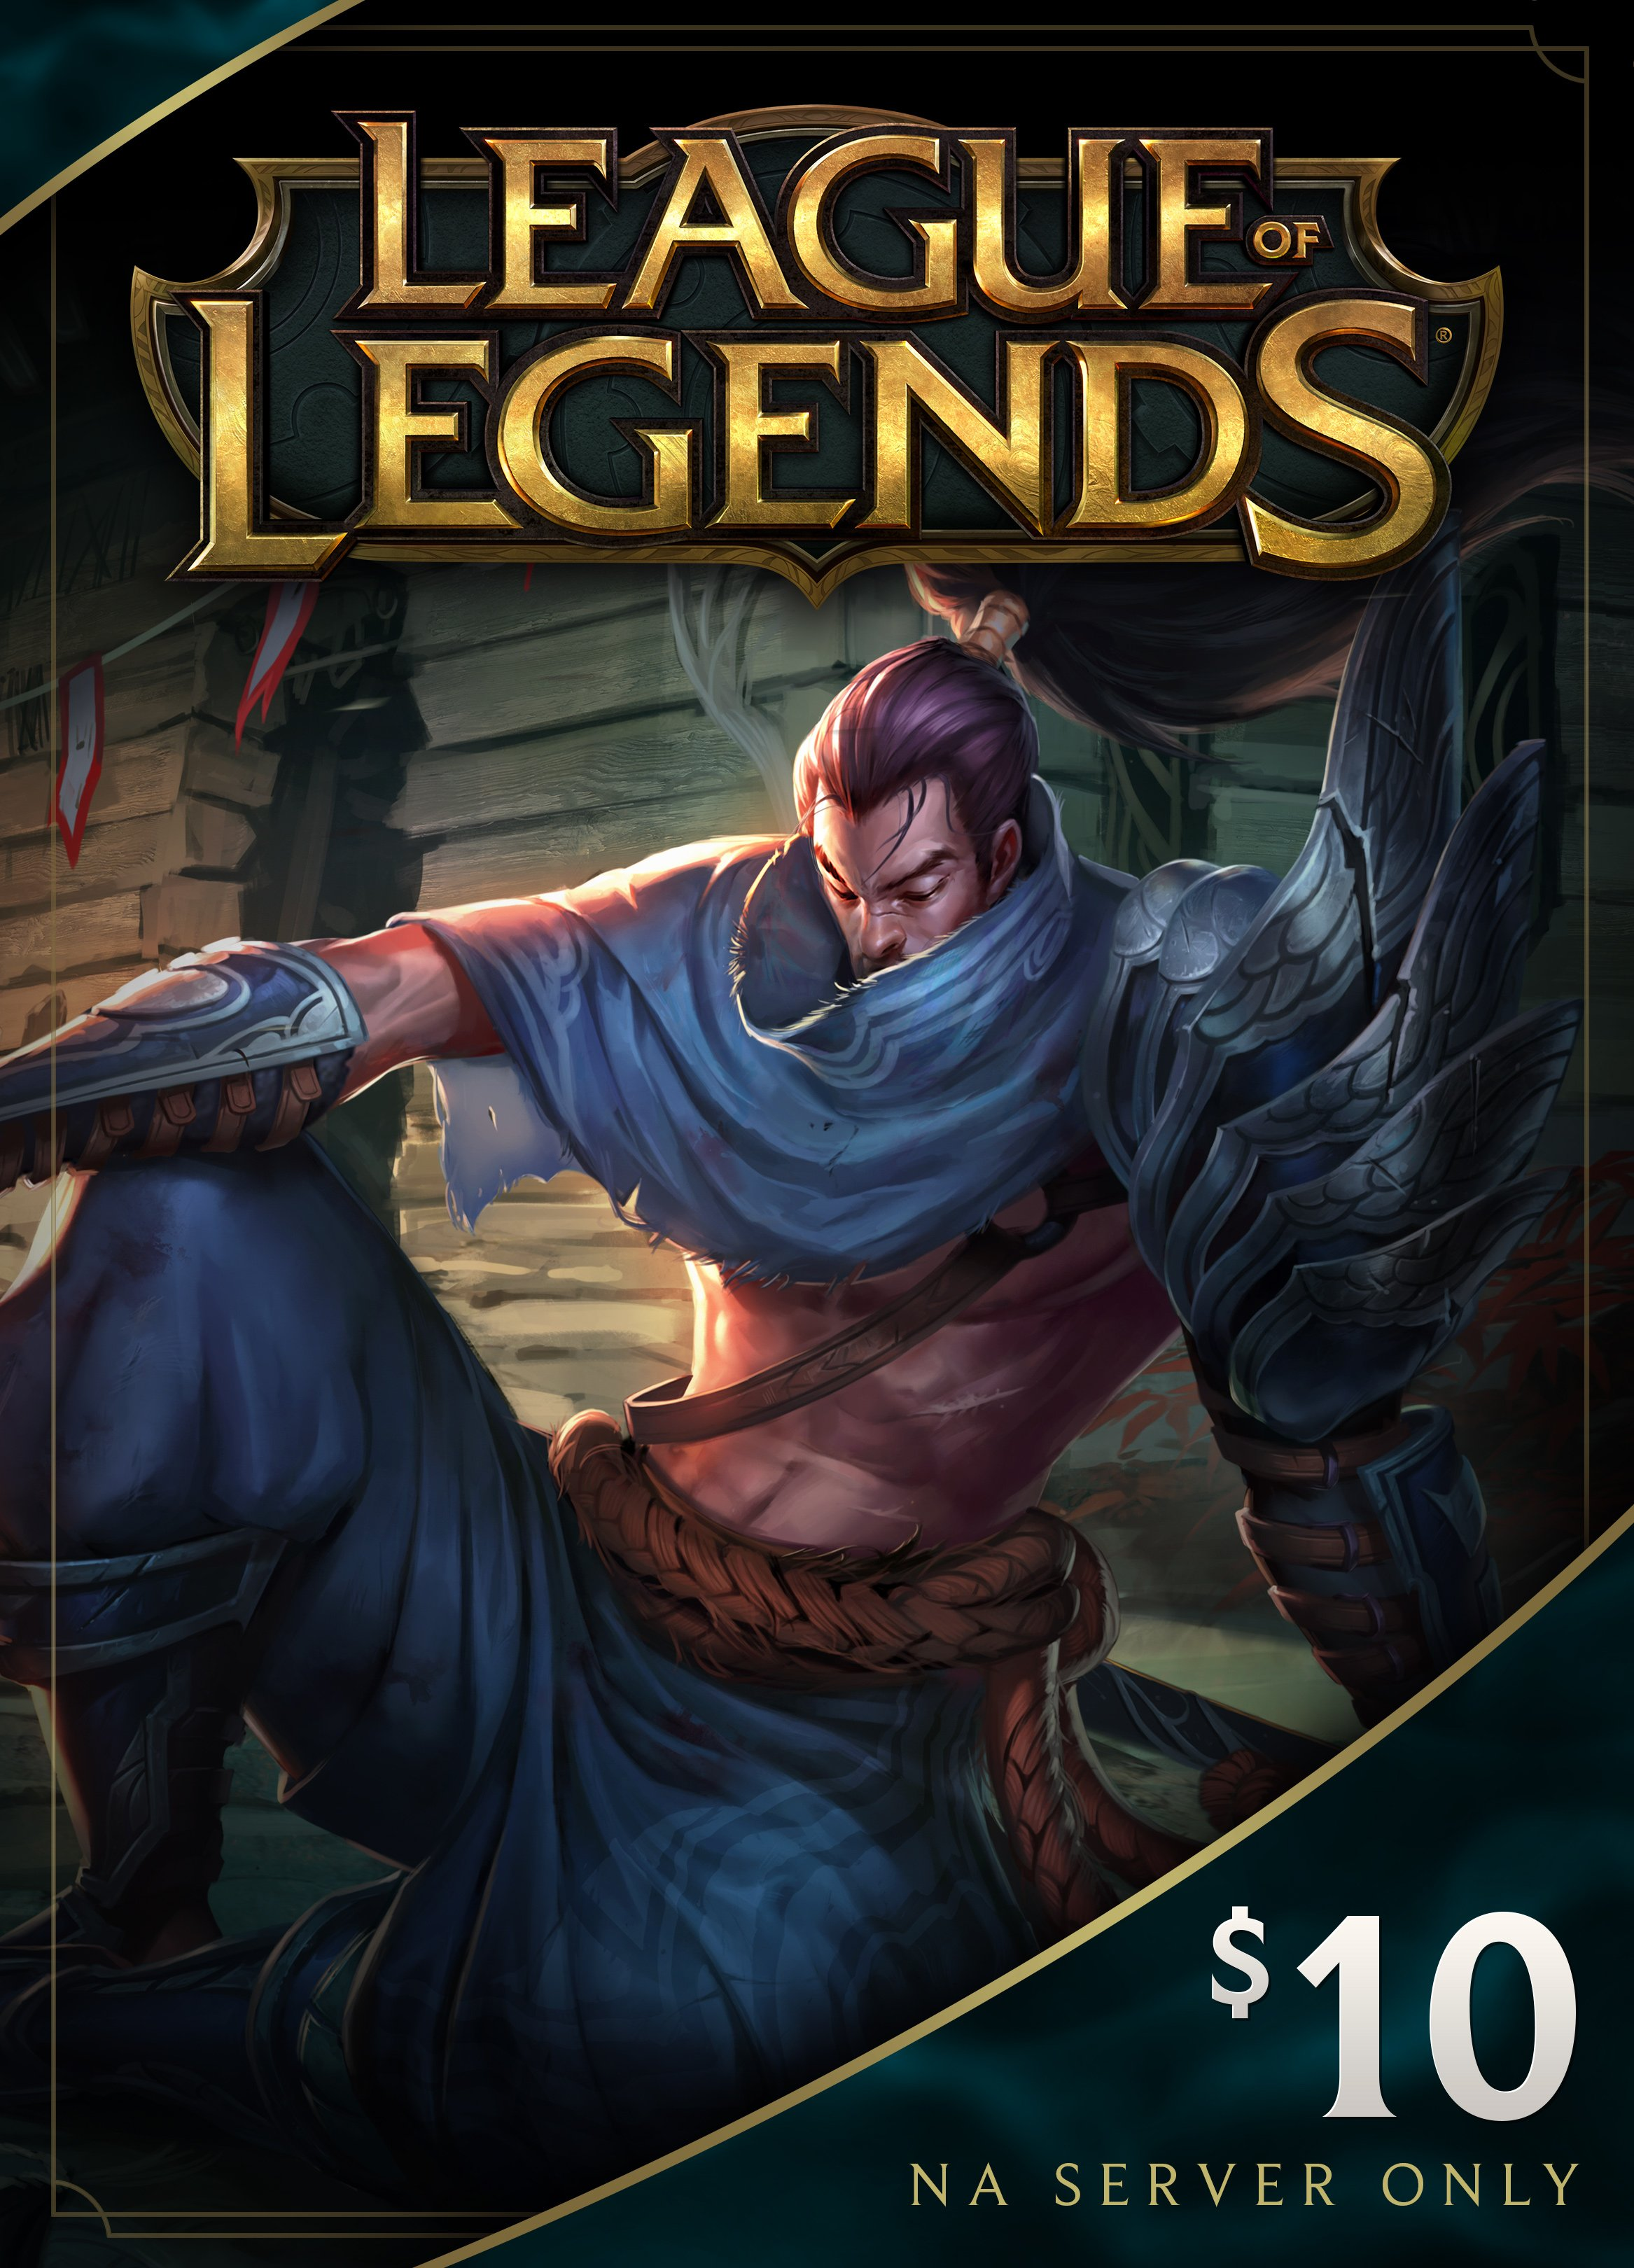 League of Legends $10 Gift Card - 1380 Riot Points - NA Server Only [Online Game Code] Million Gift Chest